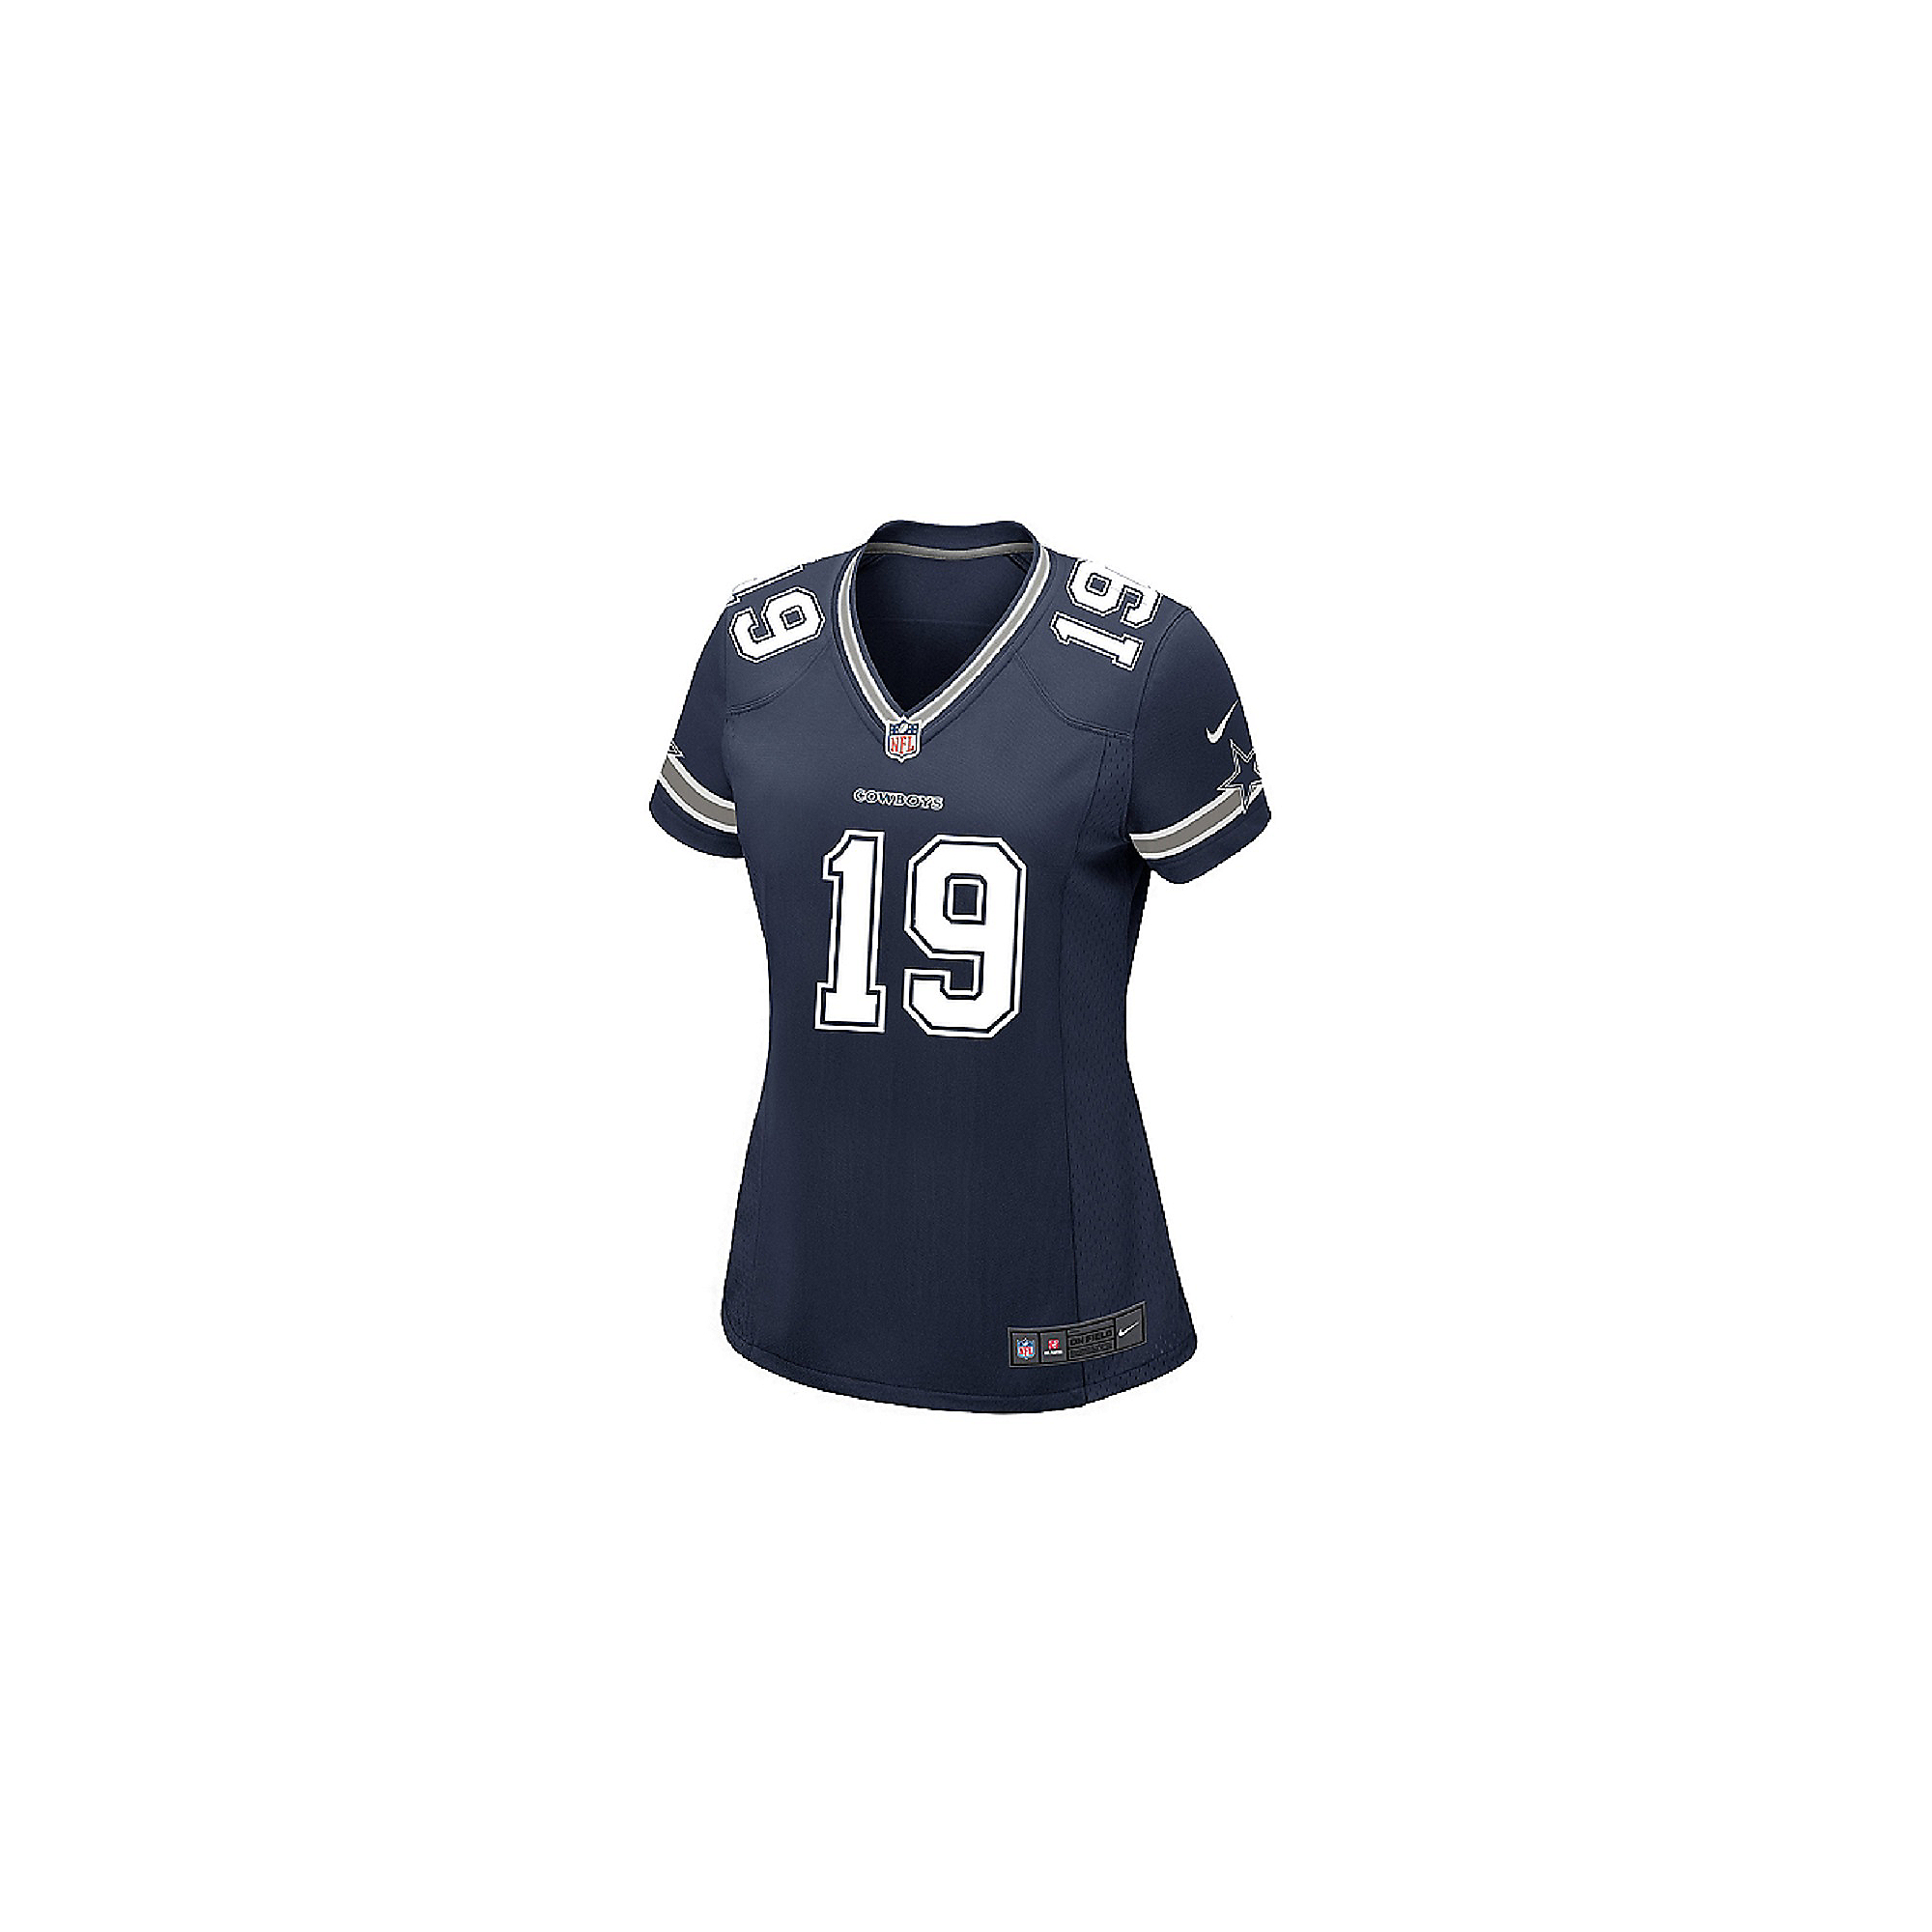 separation shoes 522d9 f09a7 Dallas Cowboys Womens Amari Cooper #19 Nike Navy Game Replica Jersey |  Dallas Cowboys Pro Shop